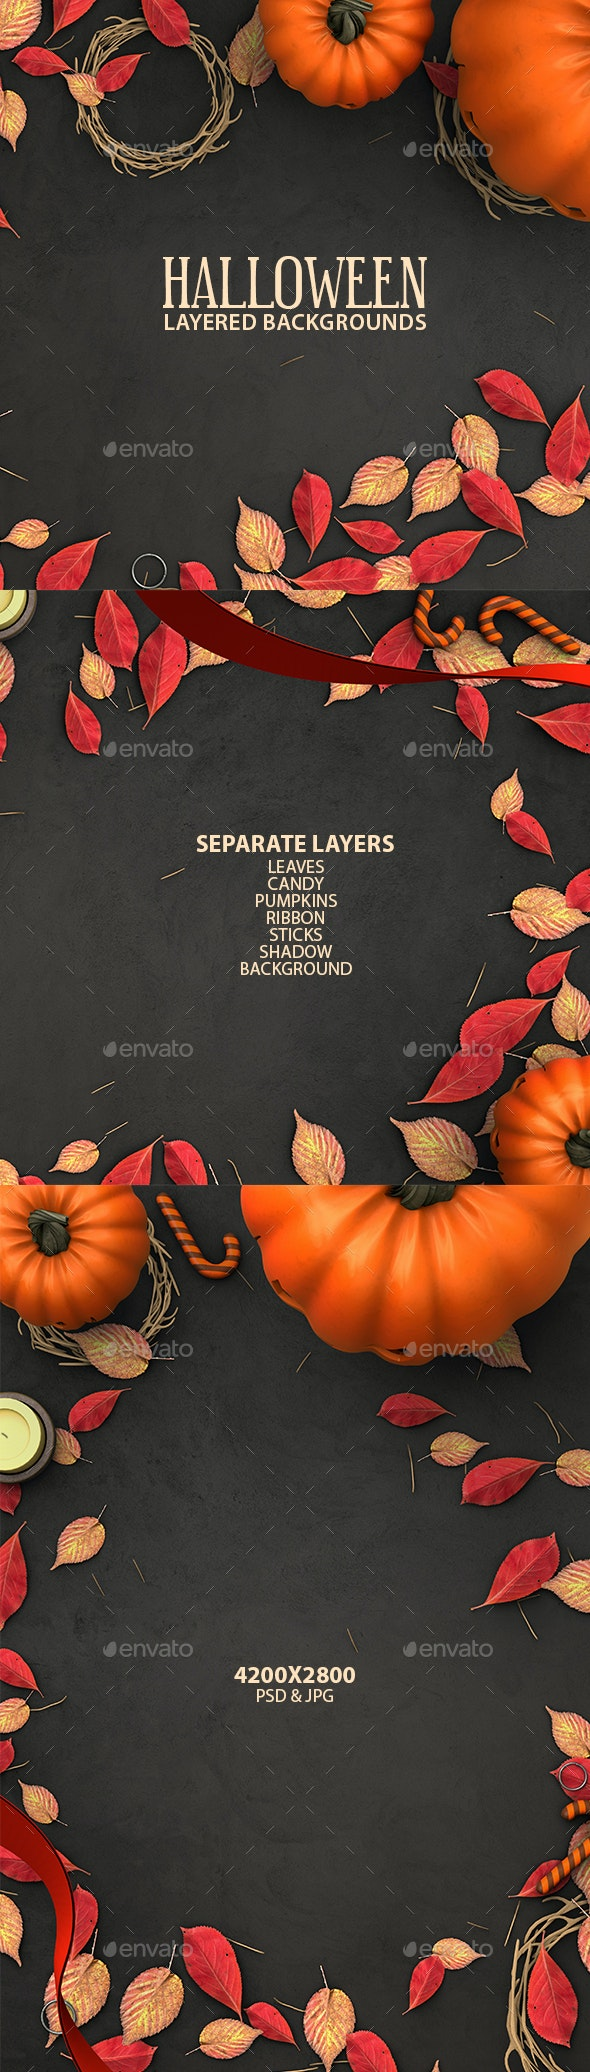 Halloween Layered Backgrounds - Miscellaneous Backgrounds